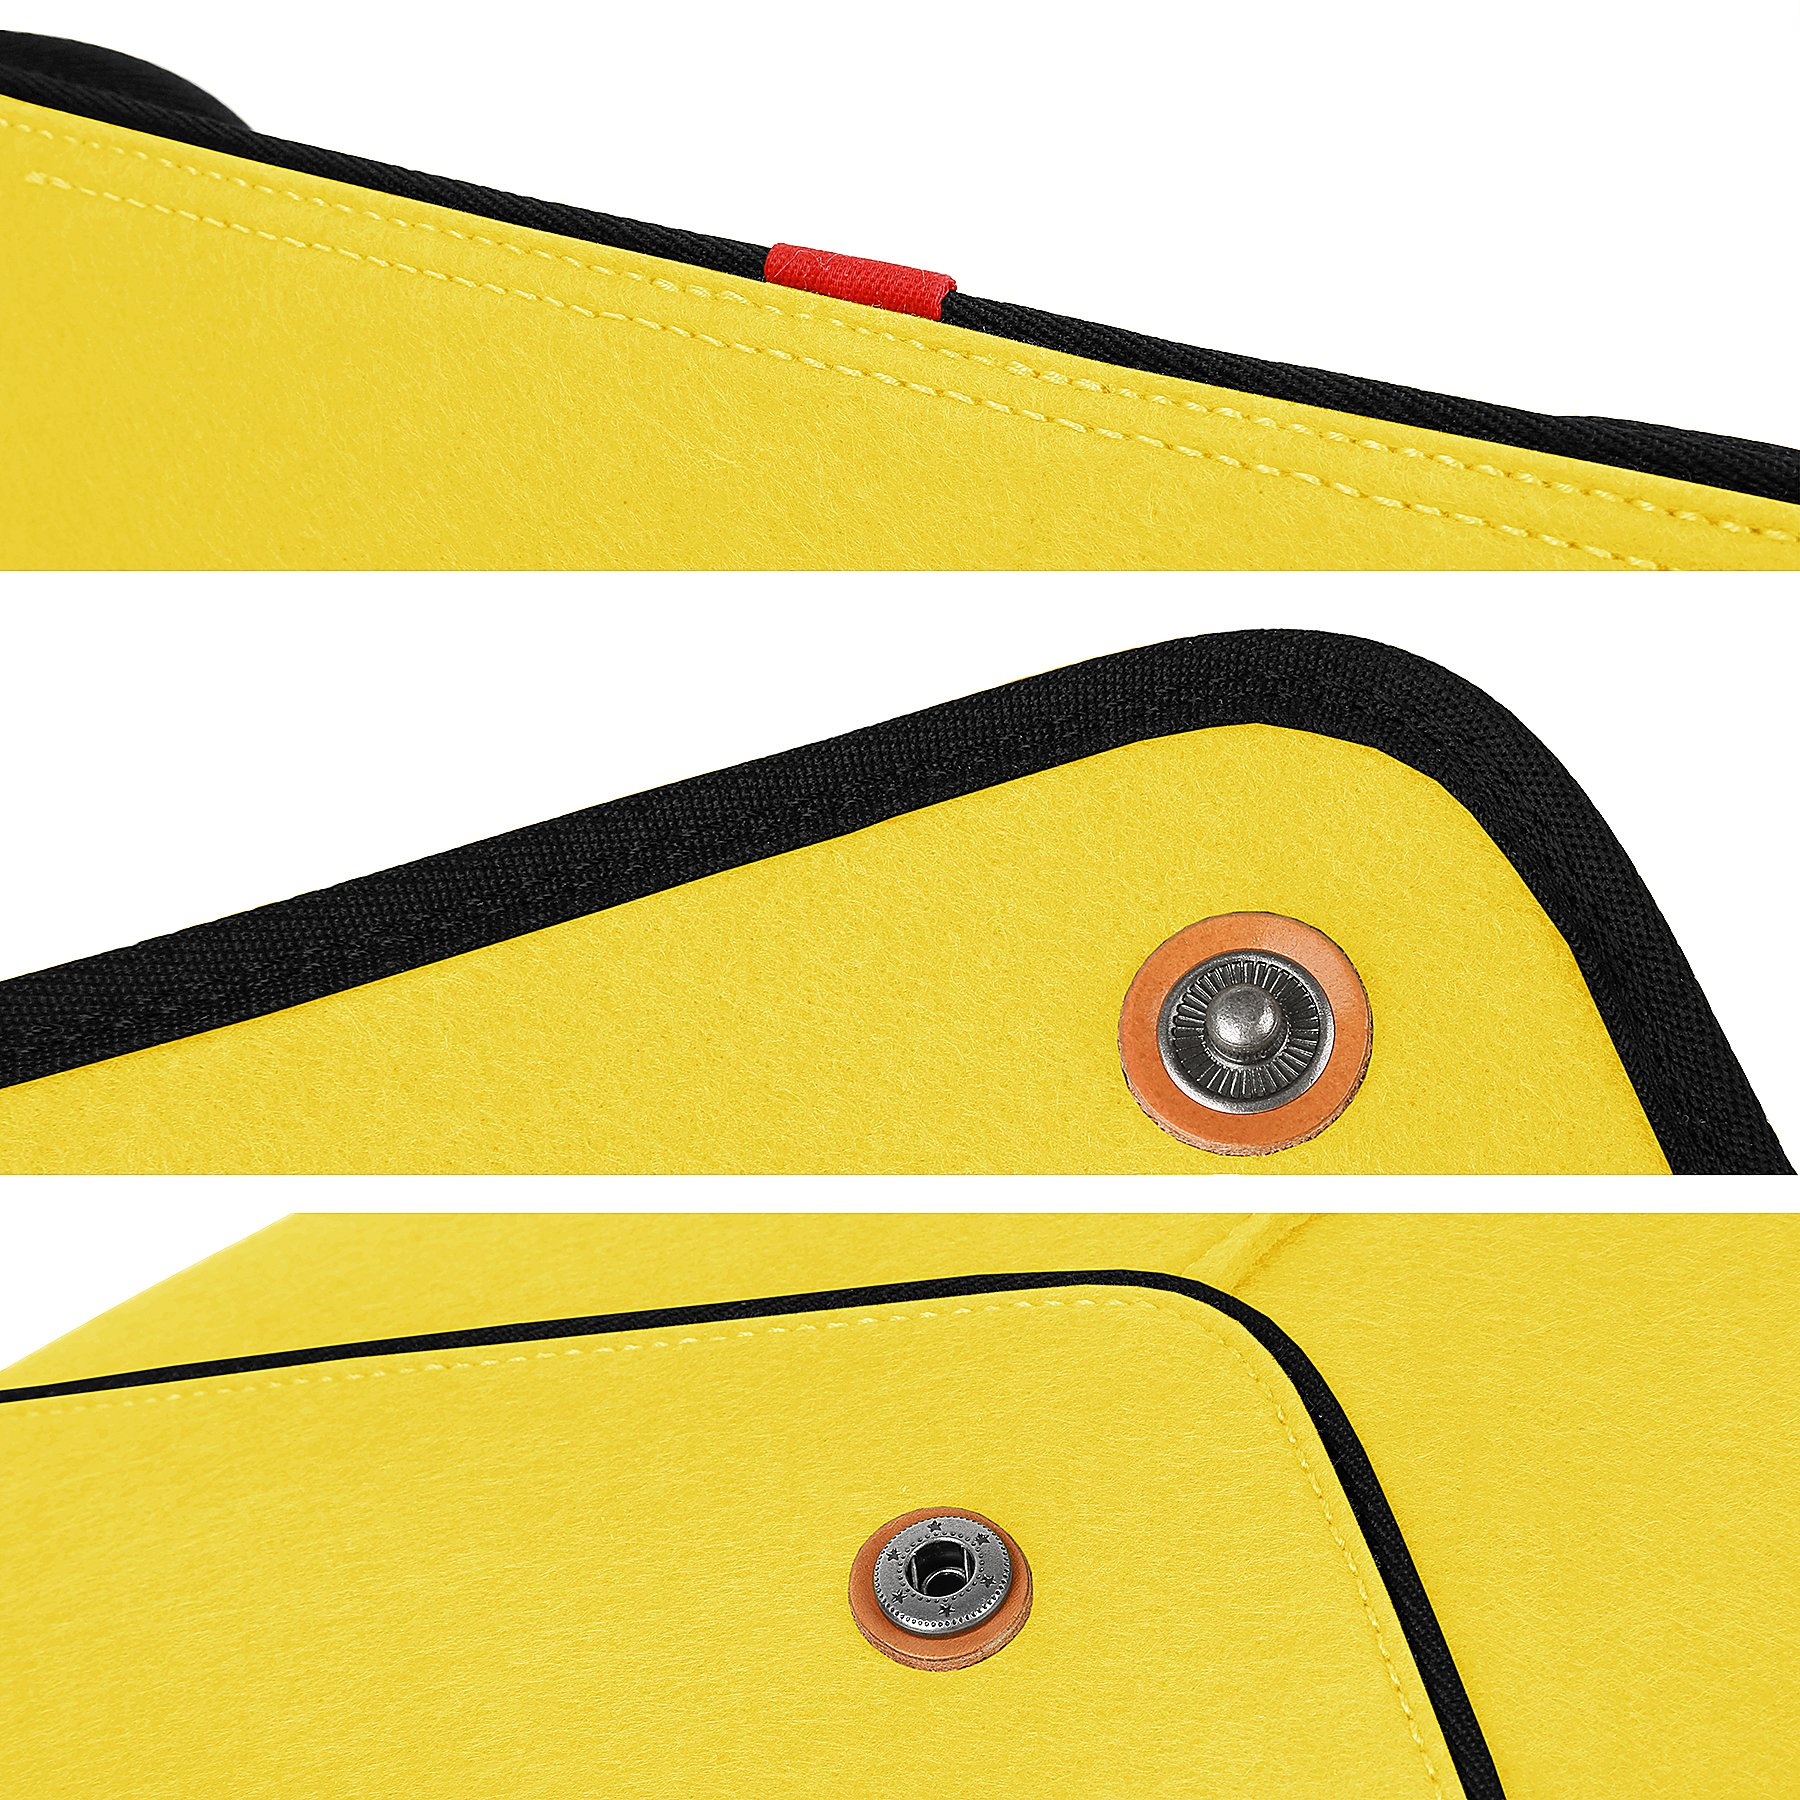 TOPHOME Laptop and Tablet Bag Business Office Bag Laptop Case Sleeve Bag 13-13.3 Inch for MacBook/Ultrabook/Tablet/HP/Acer/Asus/ Dell/Lenovo/Thinkpad Wool Felt Yellow by TOPHOME (Image #5)